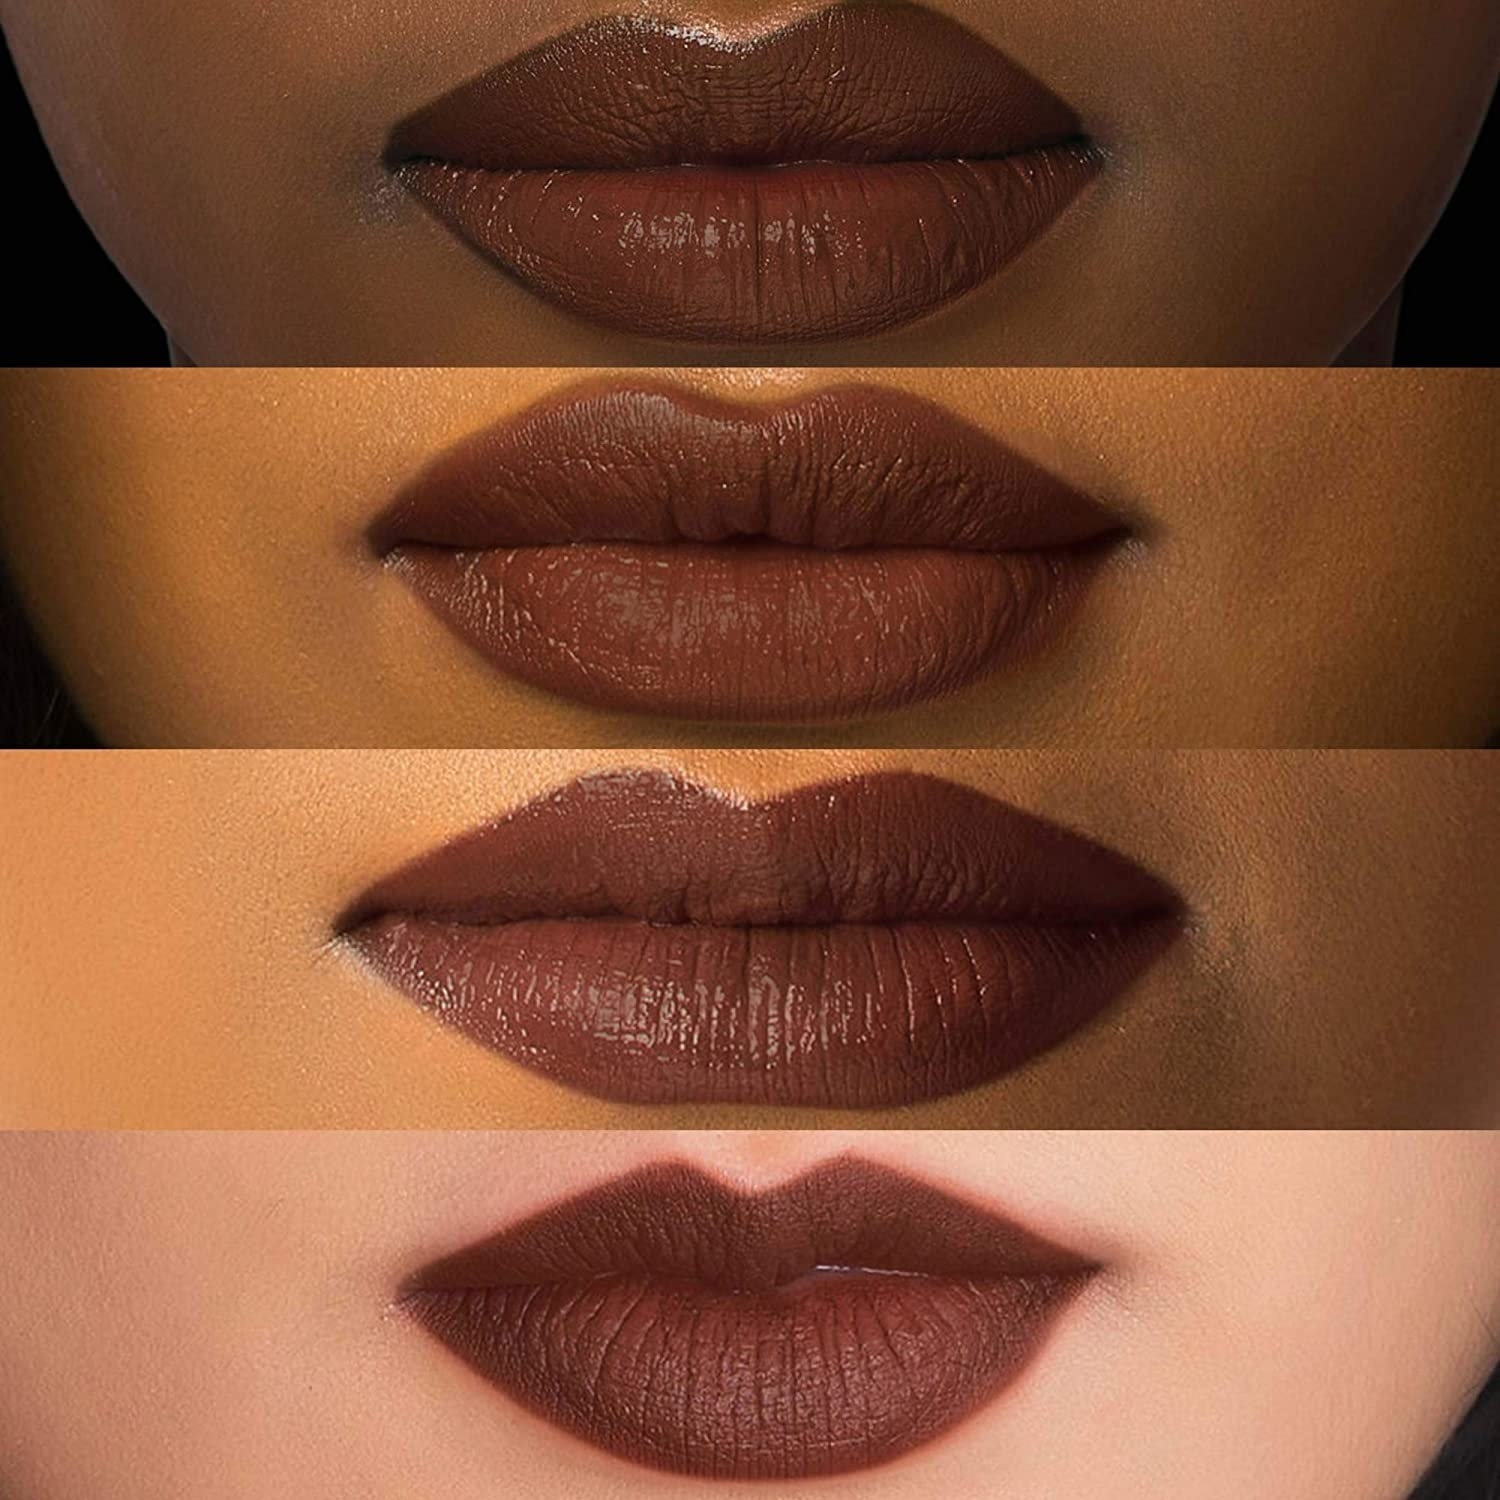 Three models with different skin tones wearing a dark brown nude shade